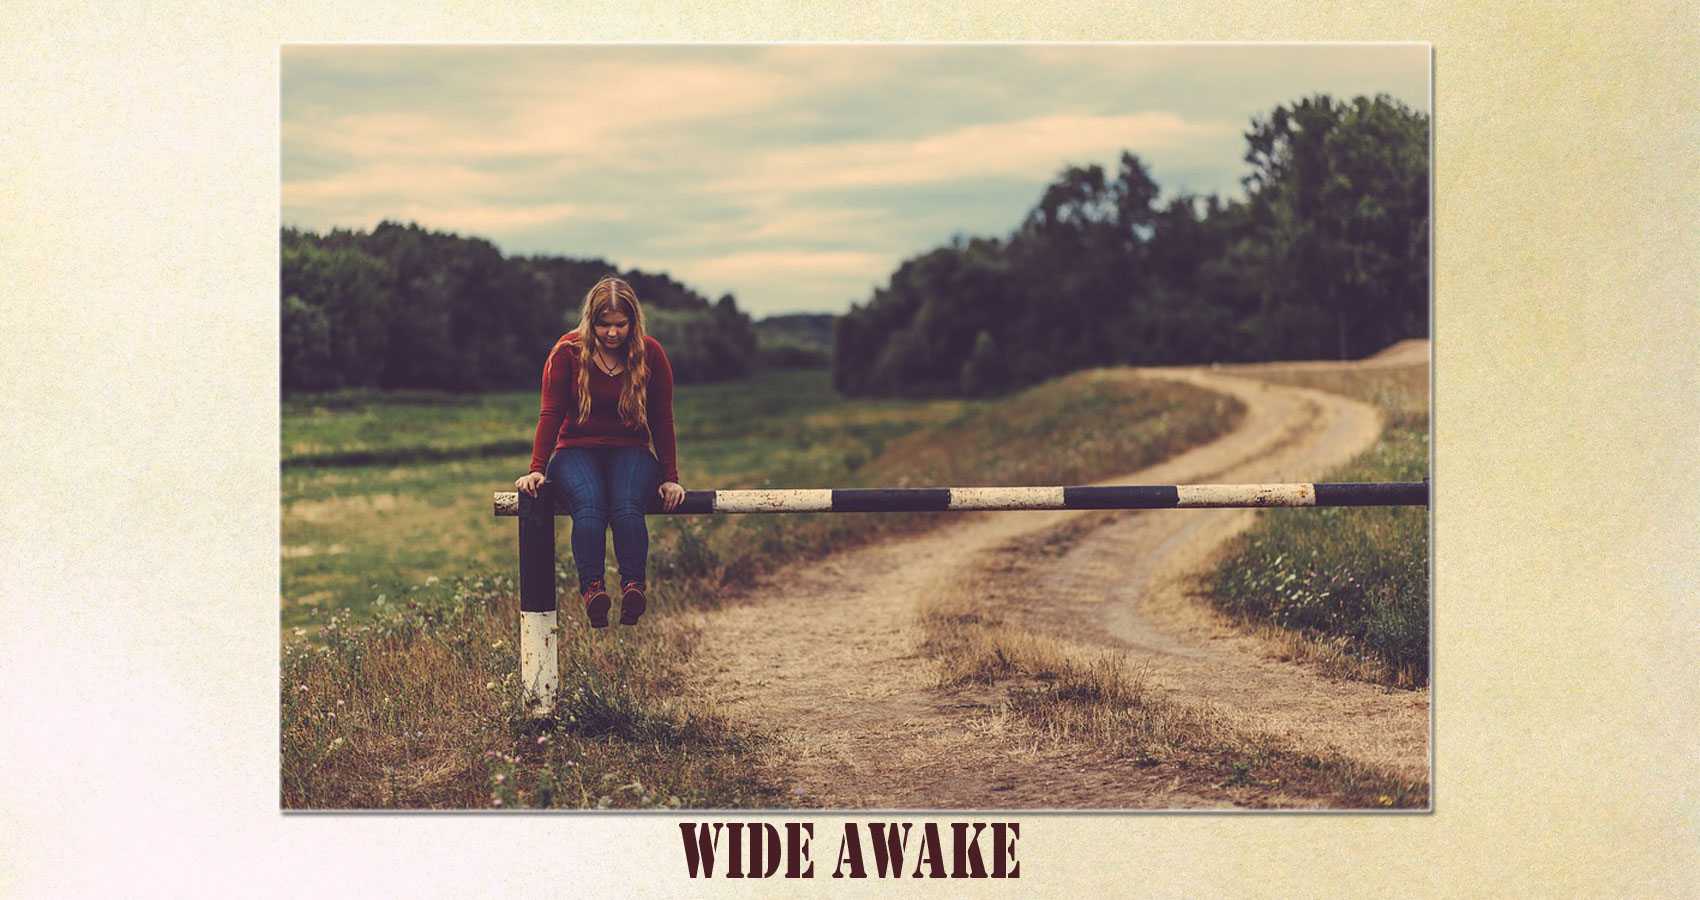 Wide Awake by Jamie Graham at Spillwords.com